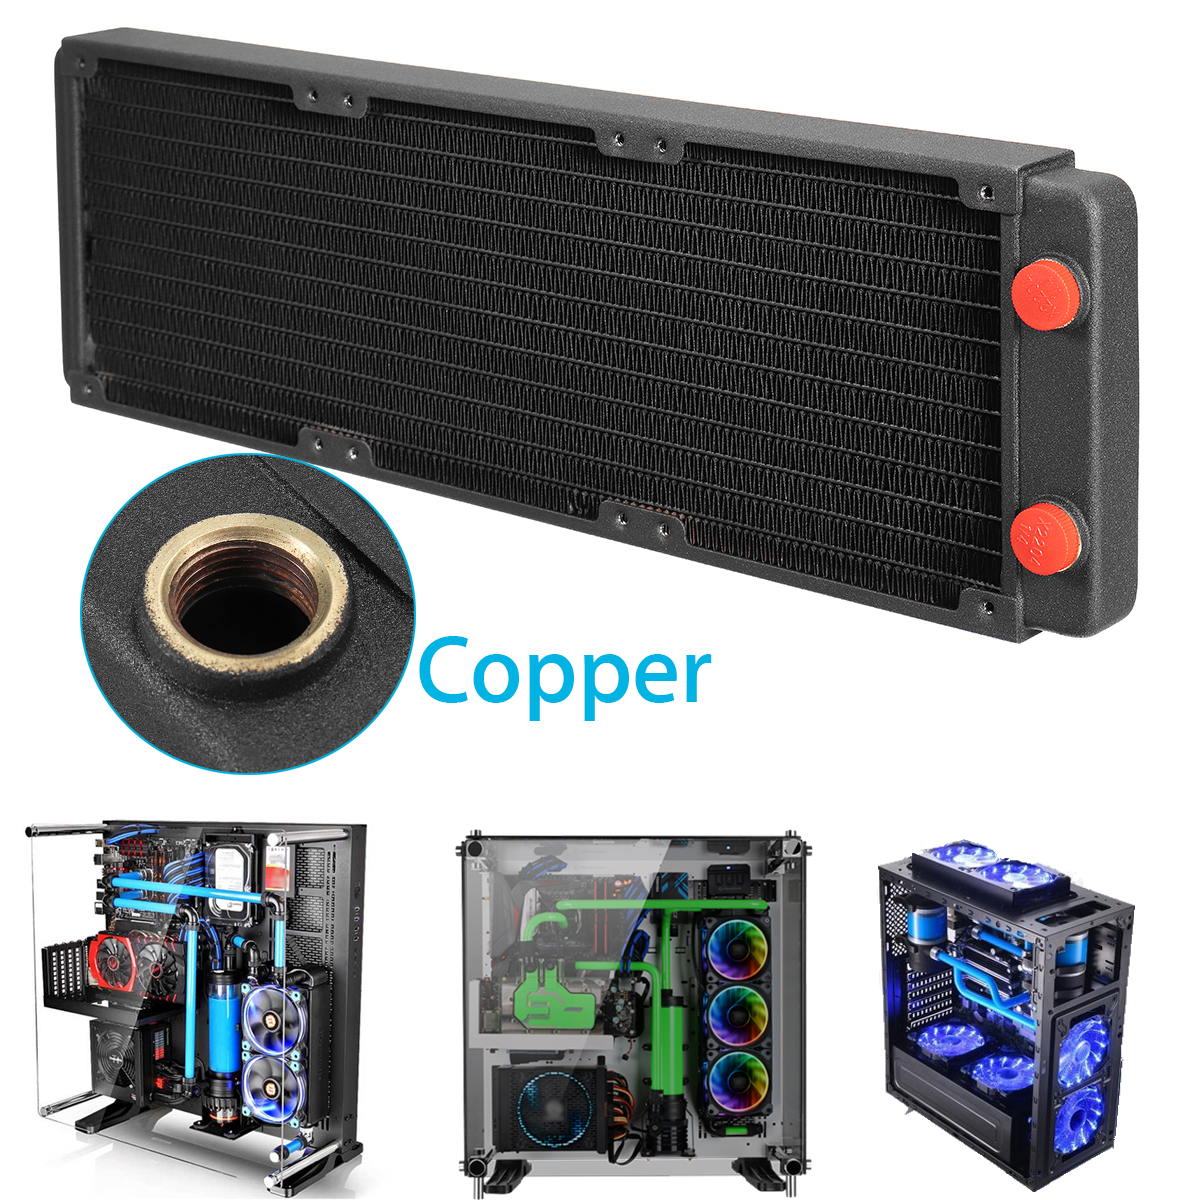 все цены на LEORY 360mm Copper Water Cooling Cooler Computer Radiator Cooler for PC Case Heat Sink Heat Exchanger Cooler for CPU GPU